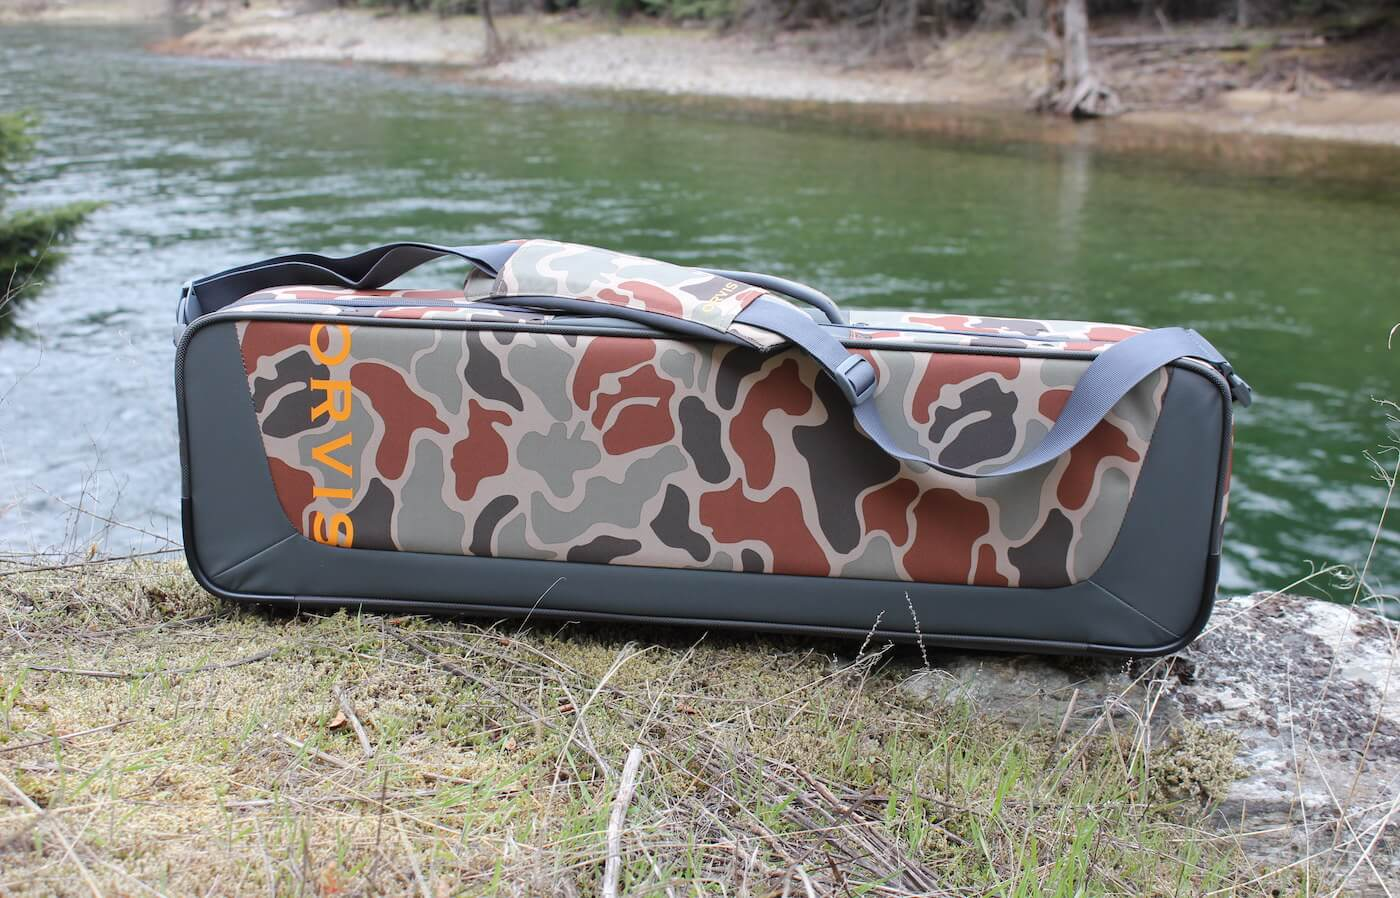 This review photo shows the Orvis Safe Passage Carry It All fly fishing travel bag case outside near a river.